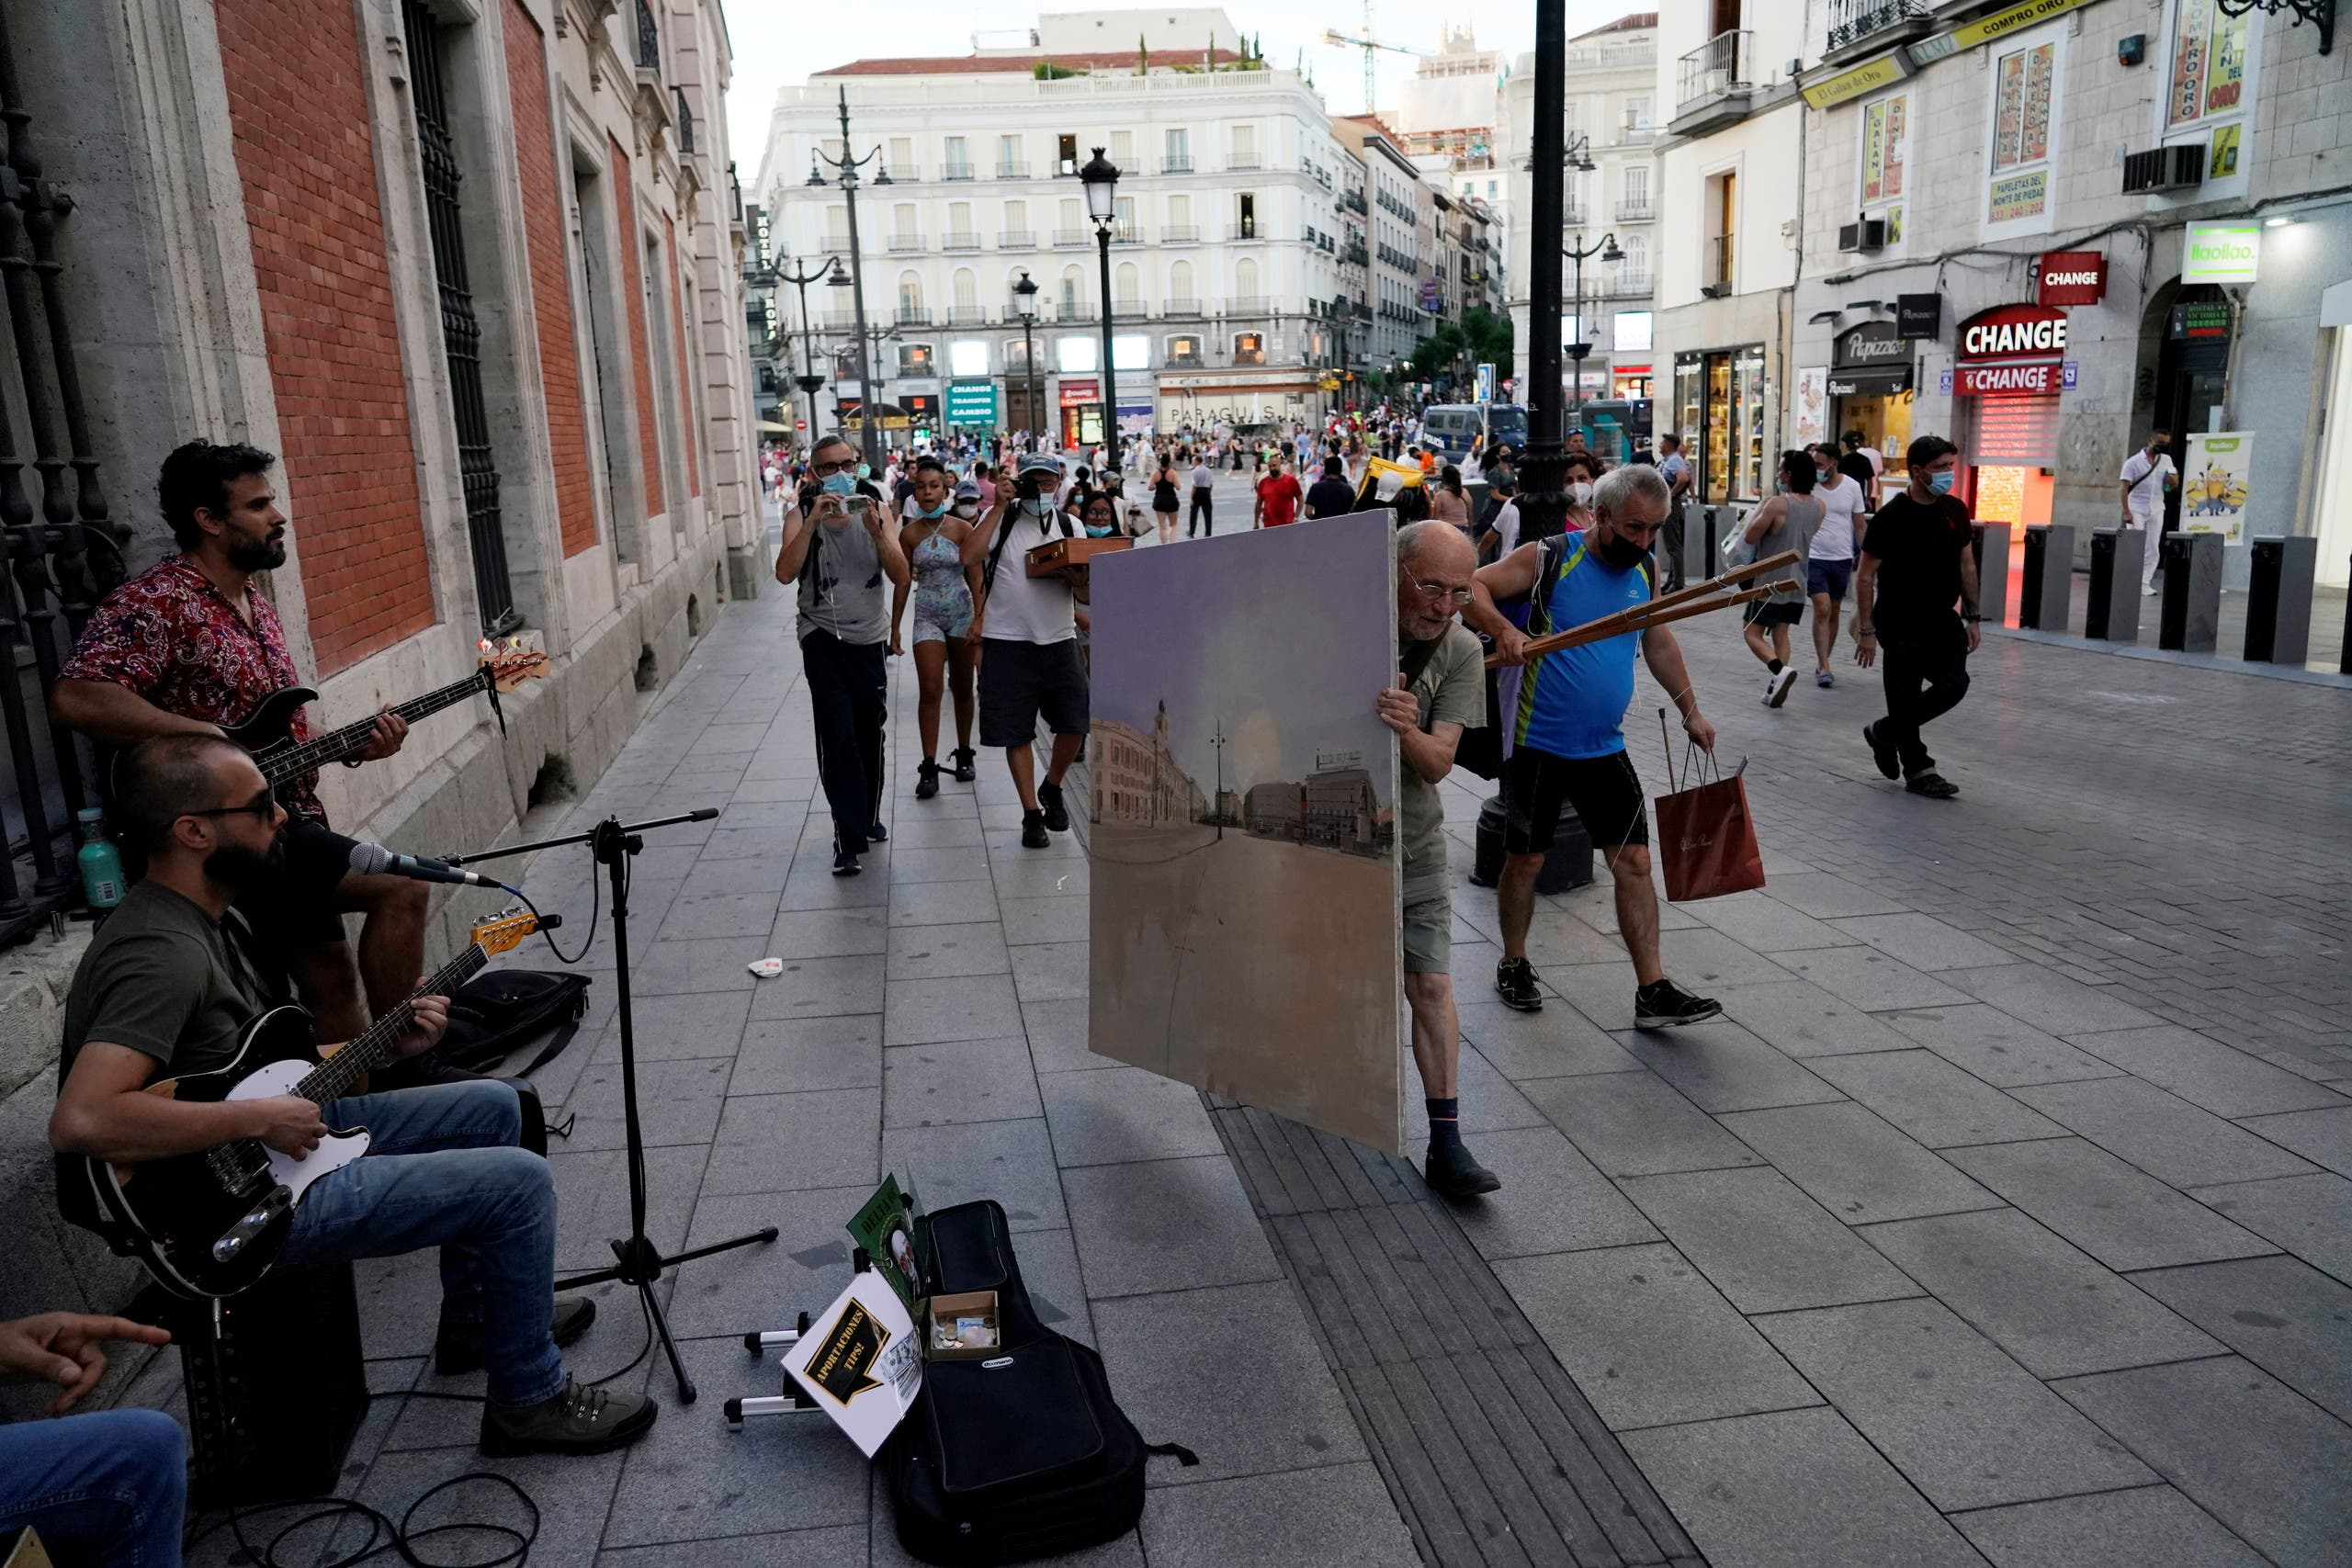 Spanish artist Antonio Lopez carries the canvas on which he is painting the famous Puerta del Sol square after a session in Madrid, Spain, August 5, 2021. Picture taken August 5, 2021. REUTERS/Juan Medina